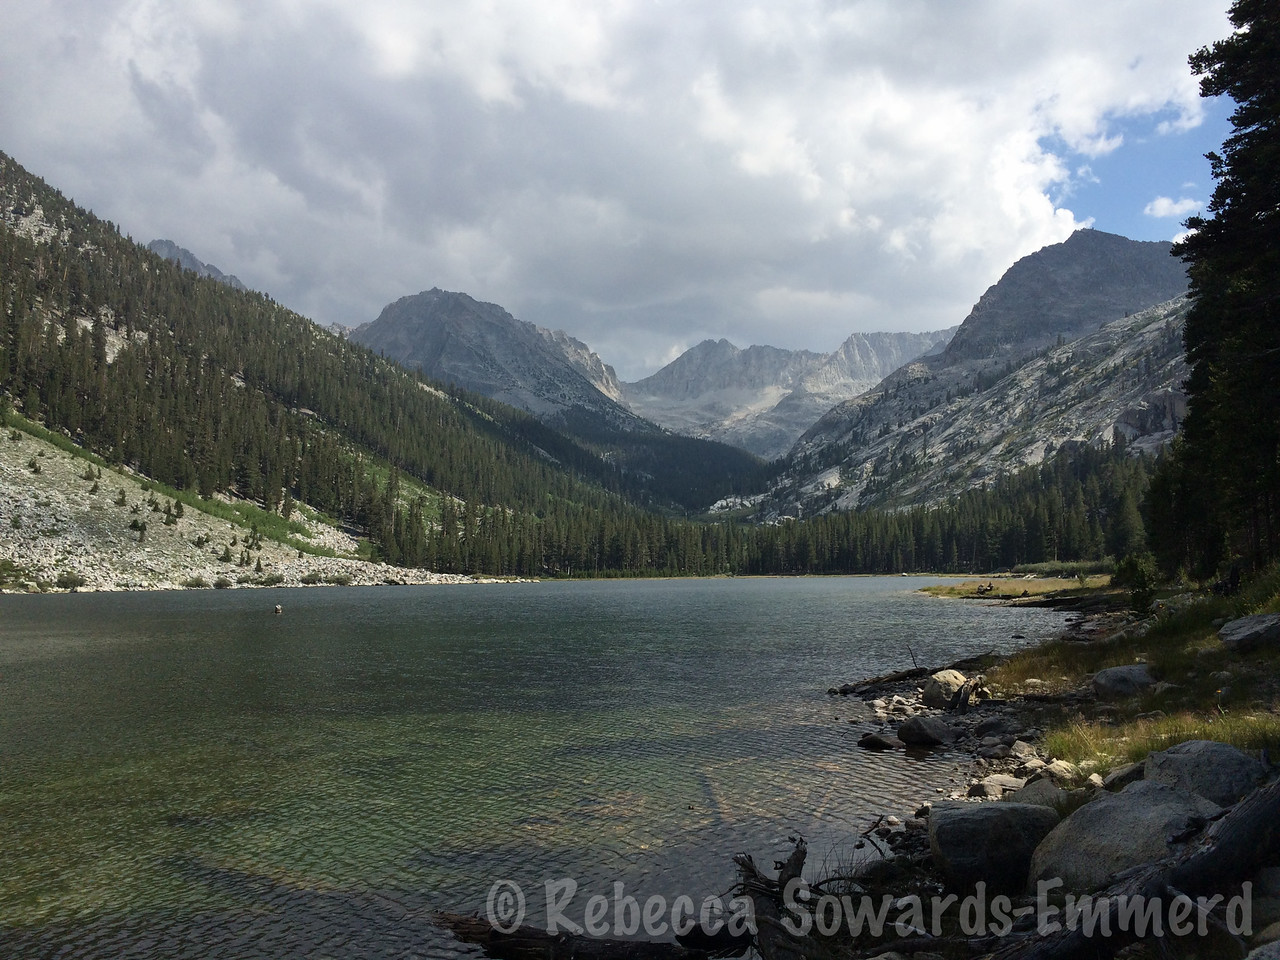 Mt Genevra (center) from East lake. We start hustling to find camp before storms build.